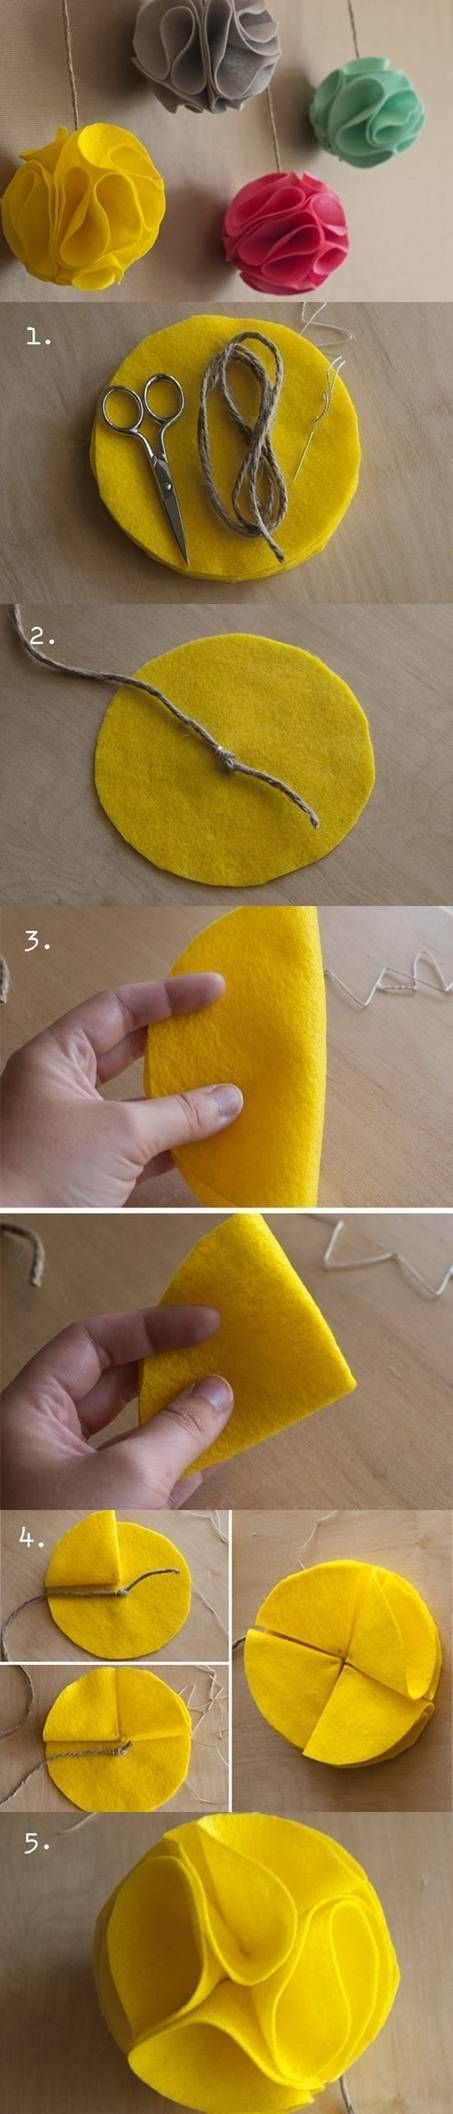 DIY Felt Decorative Balls DIY Felt Decorative Balls by diyforever